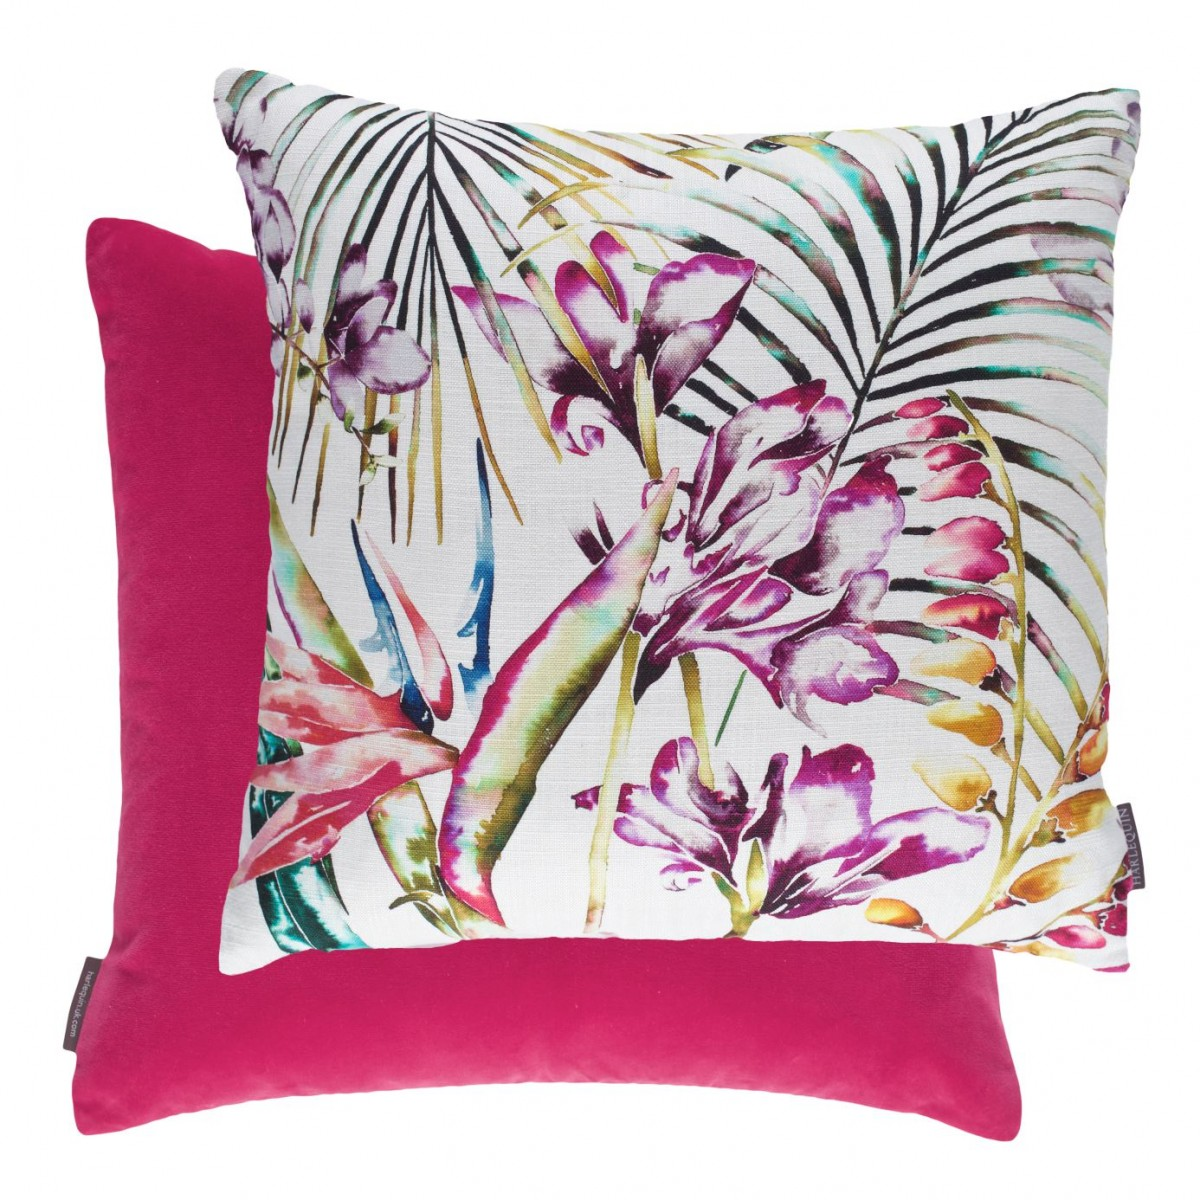 Tropical Trend in Interiors